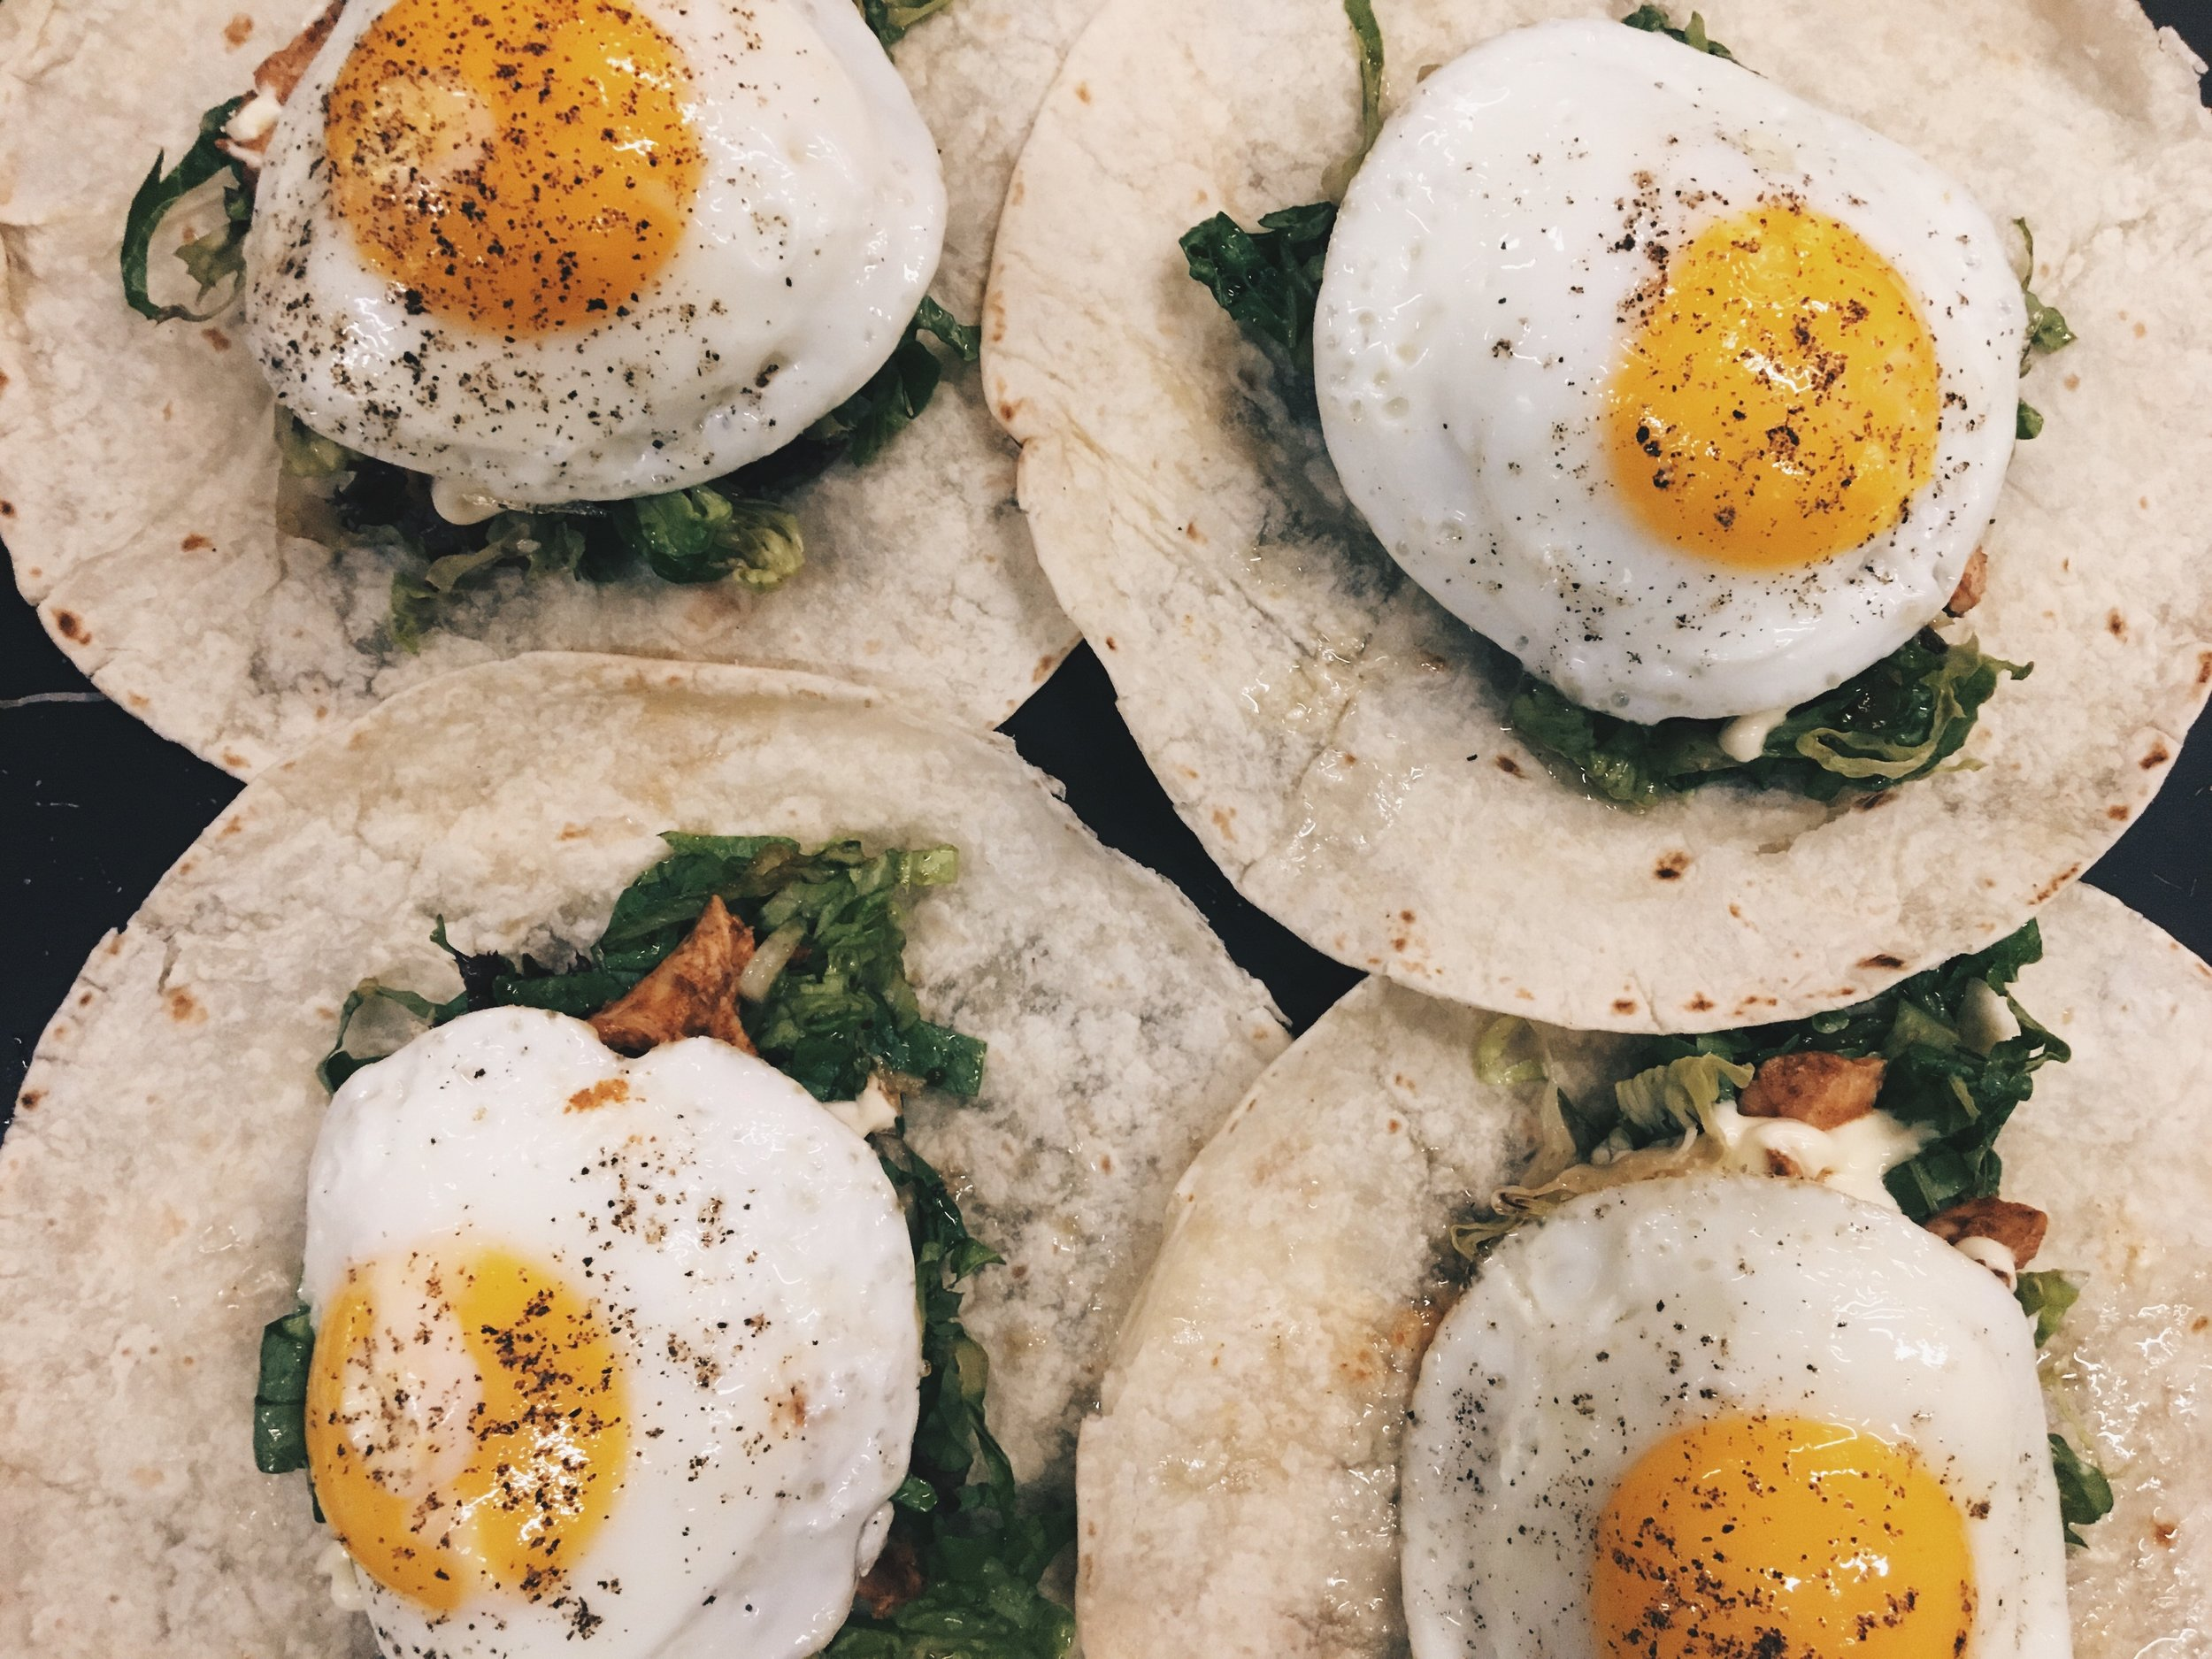 Fried egg tortillas